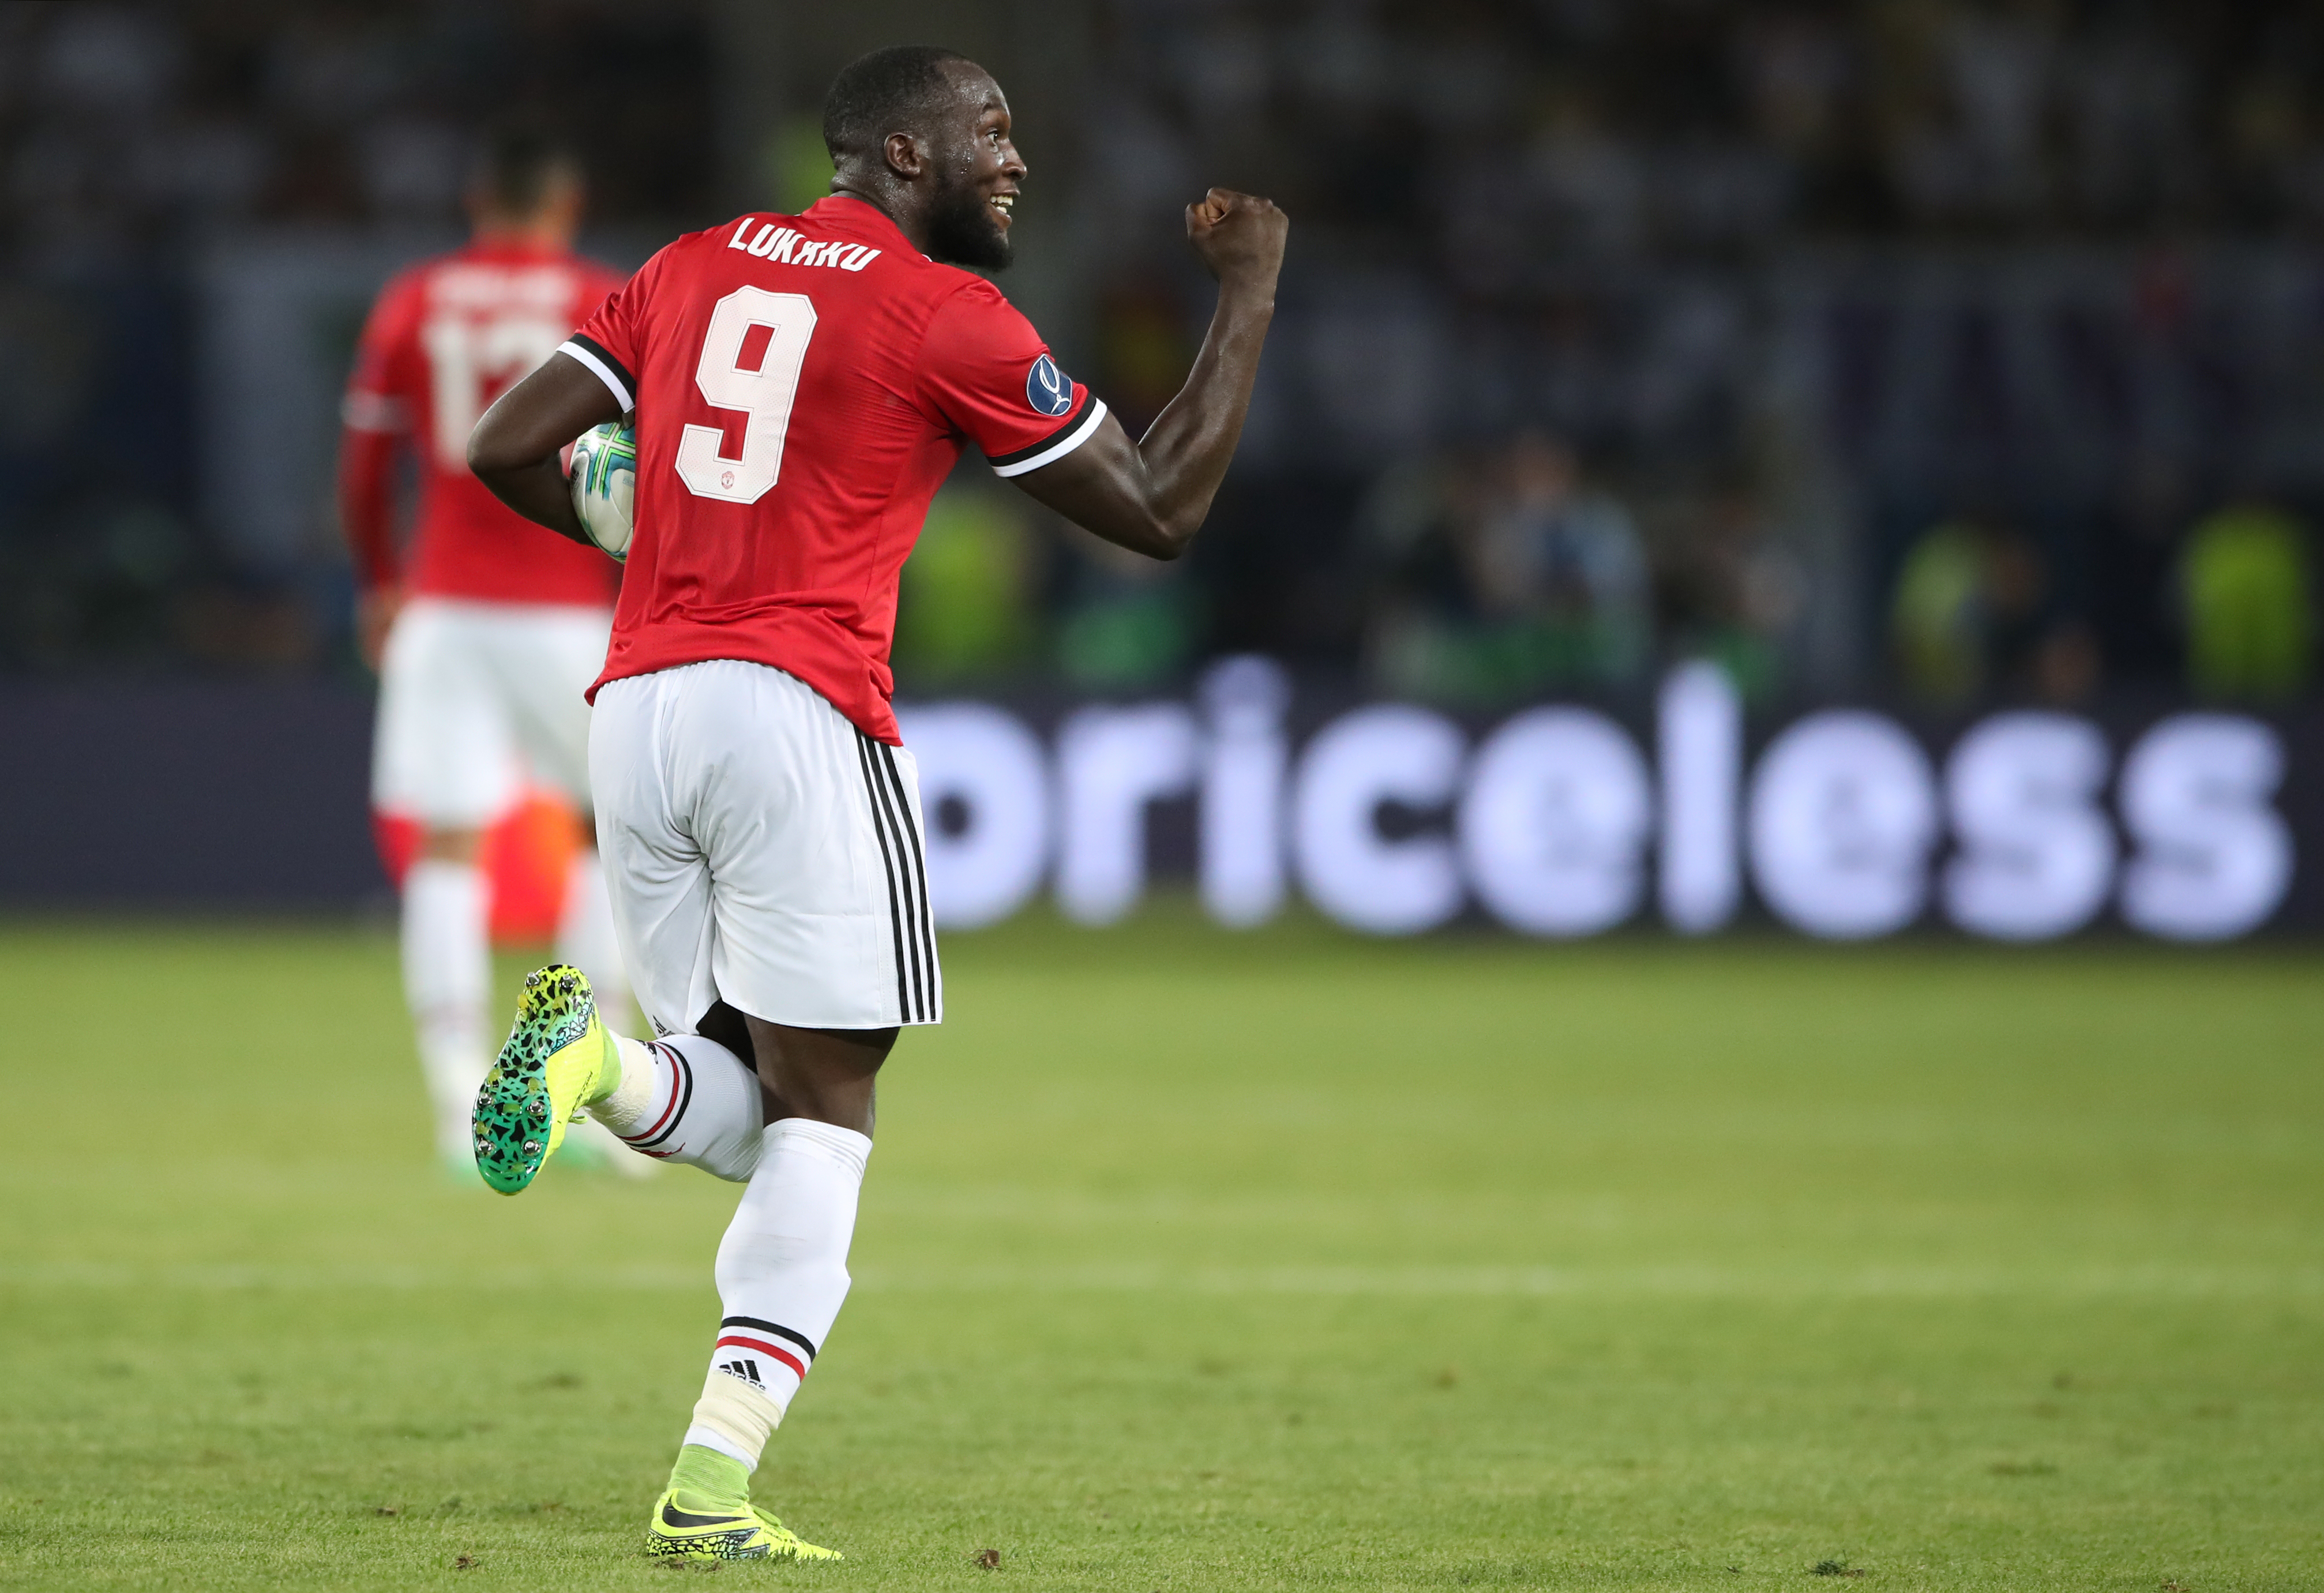 Manchester United's Romelu Lukaku celebrates scoring his side's first goal of the game